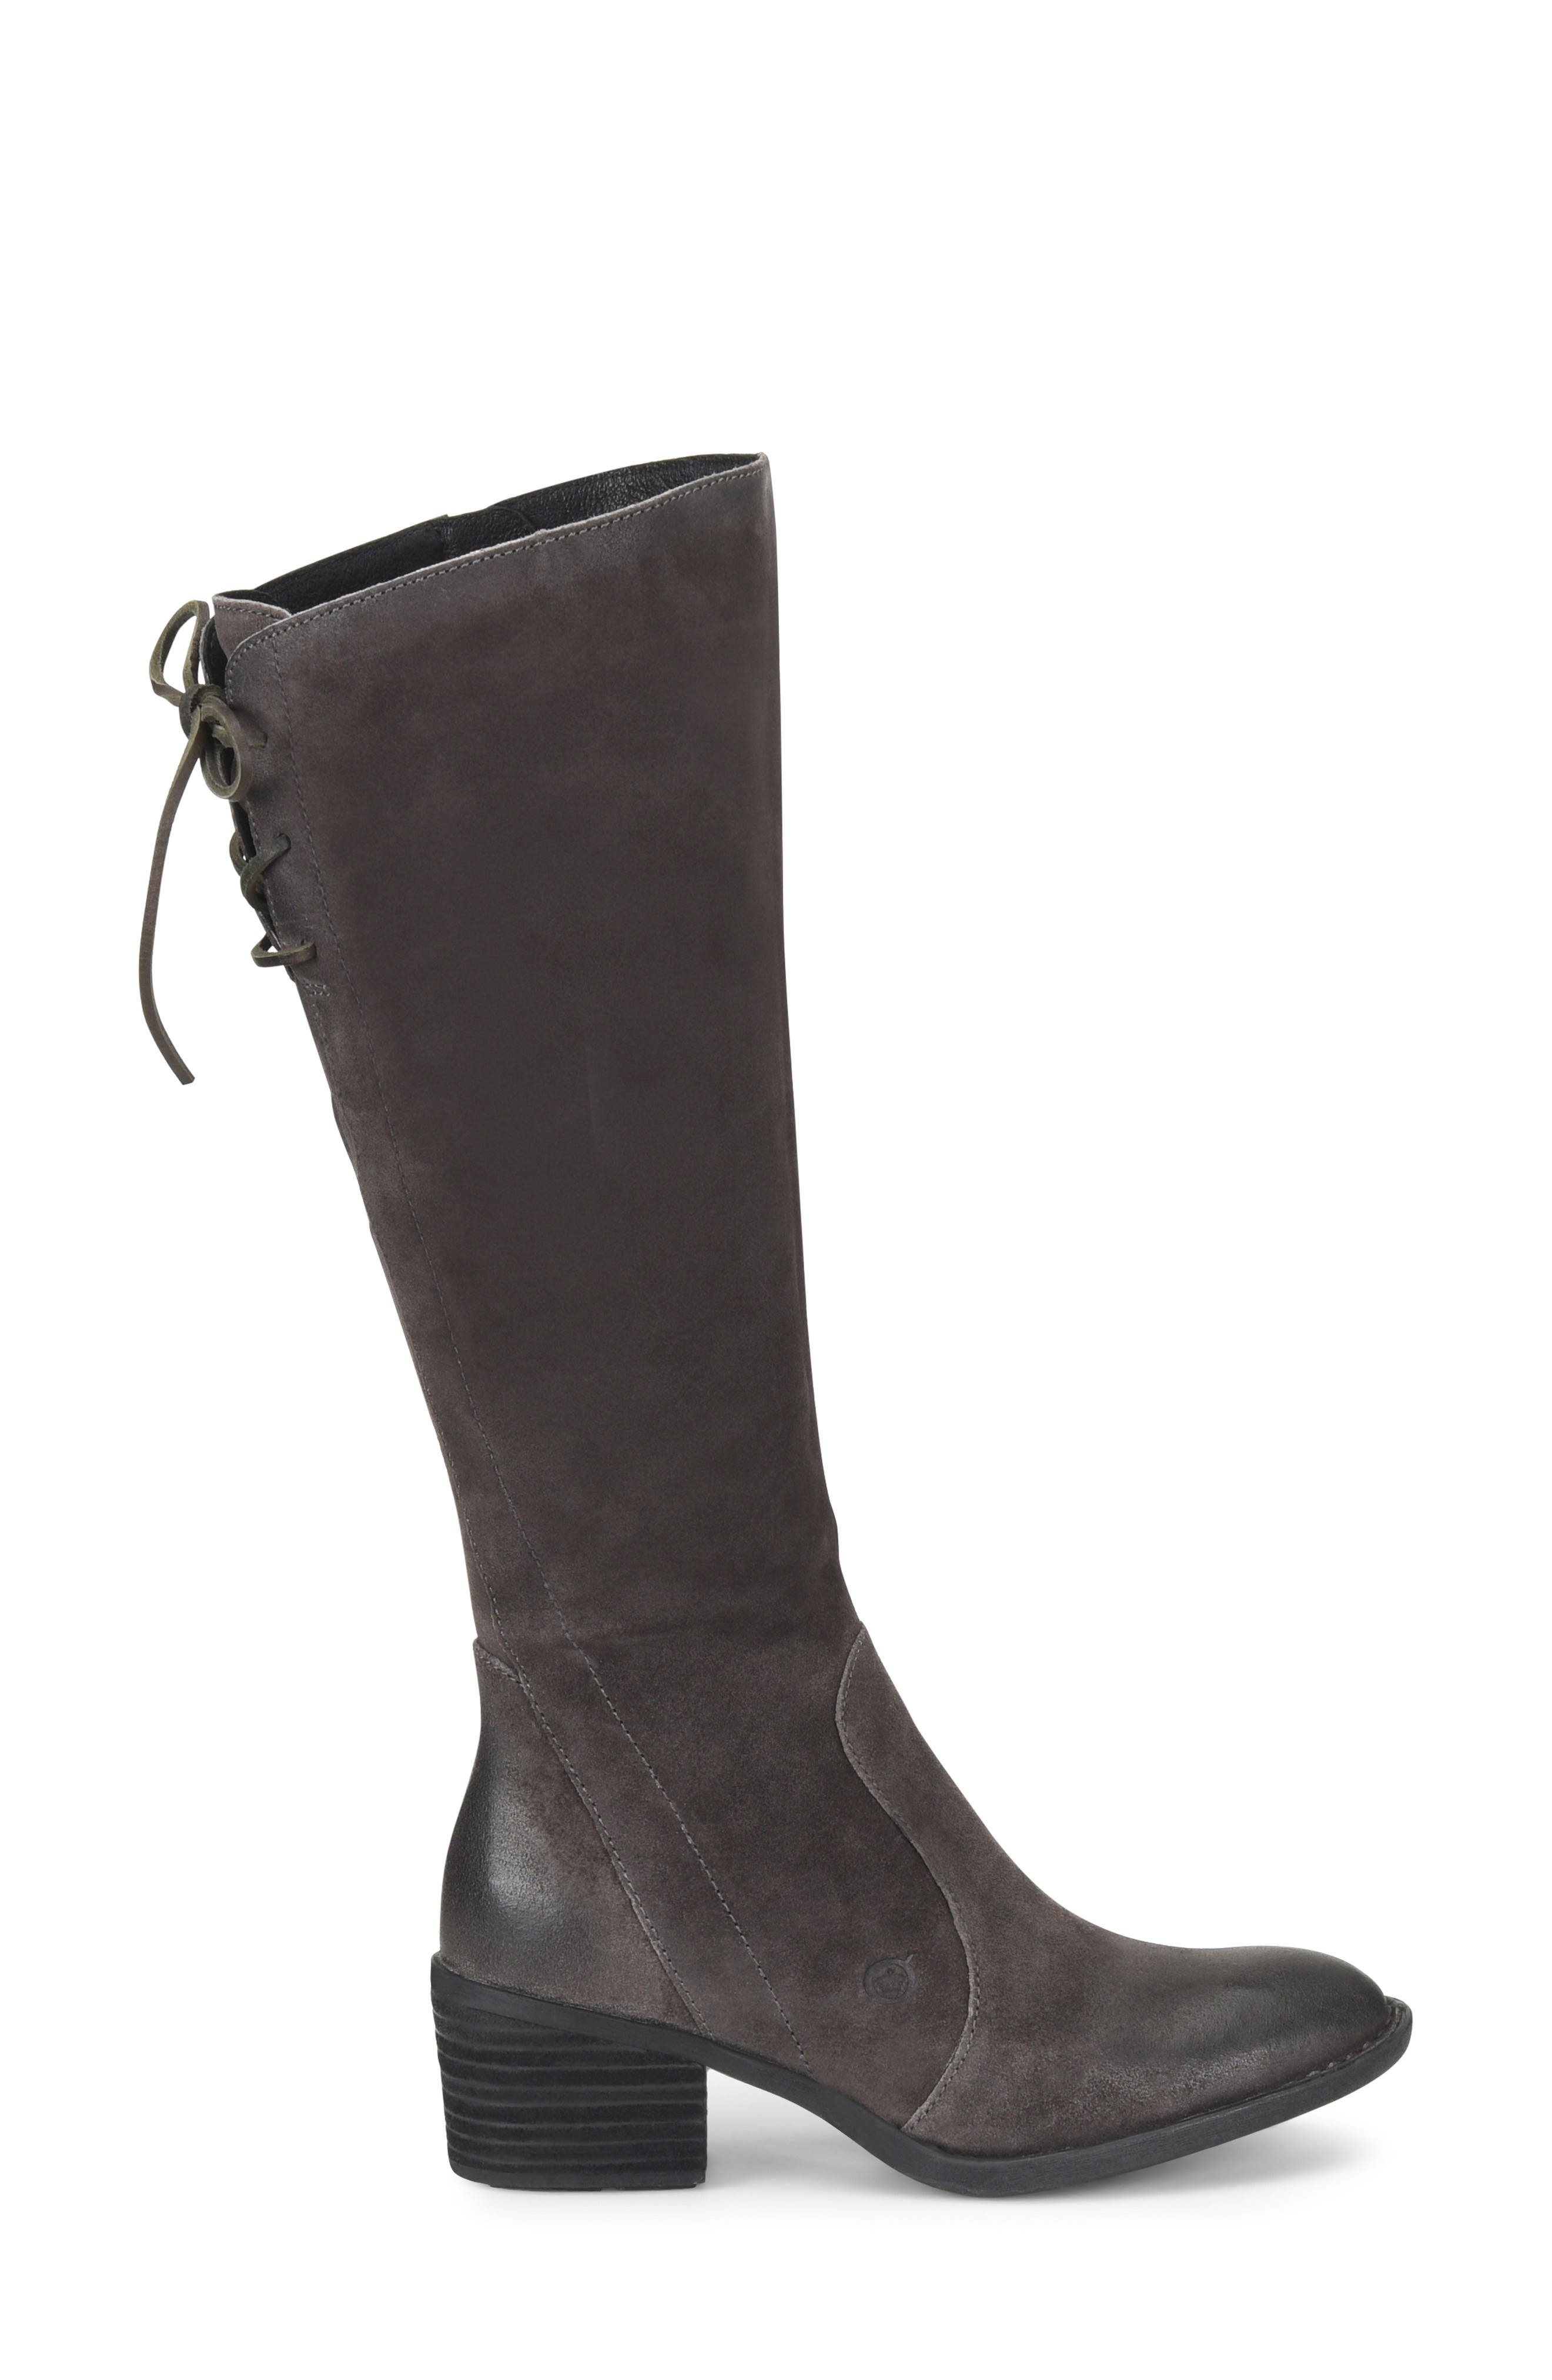 Felicia Knee High Boot,                             Alternate thumbnail 3, color,                             021